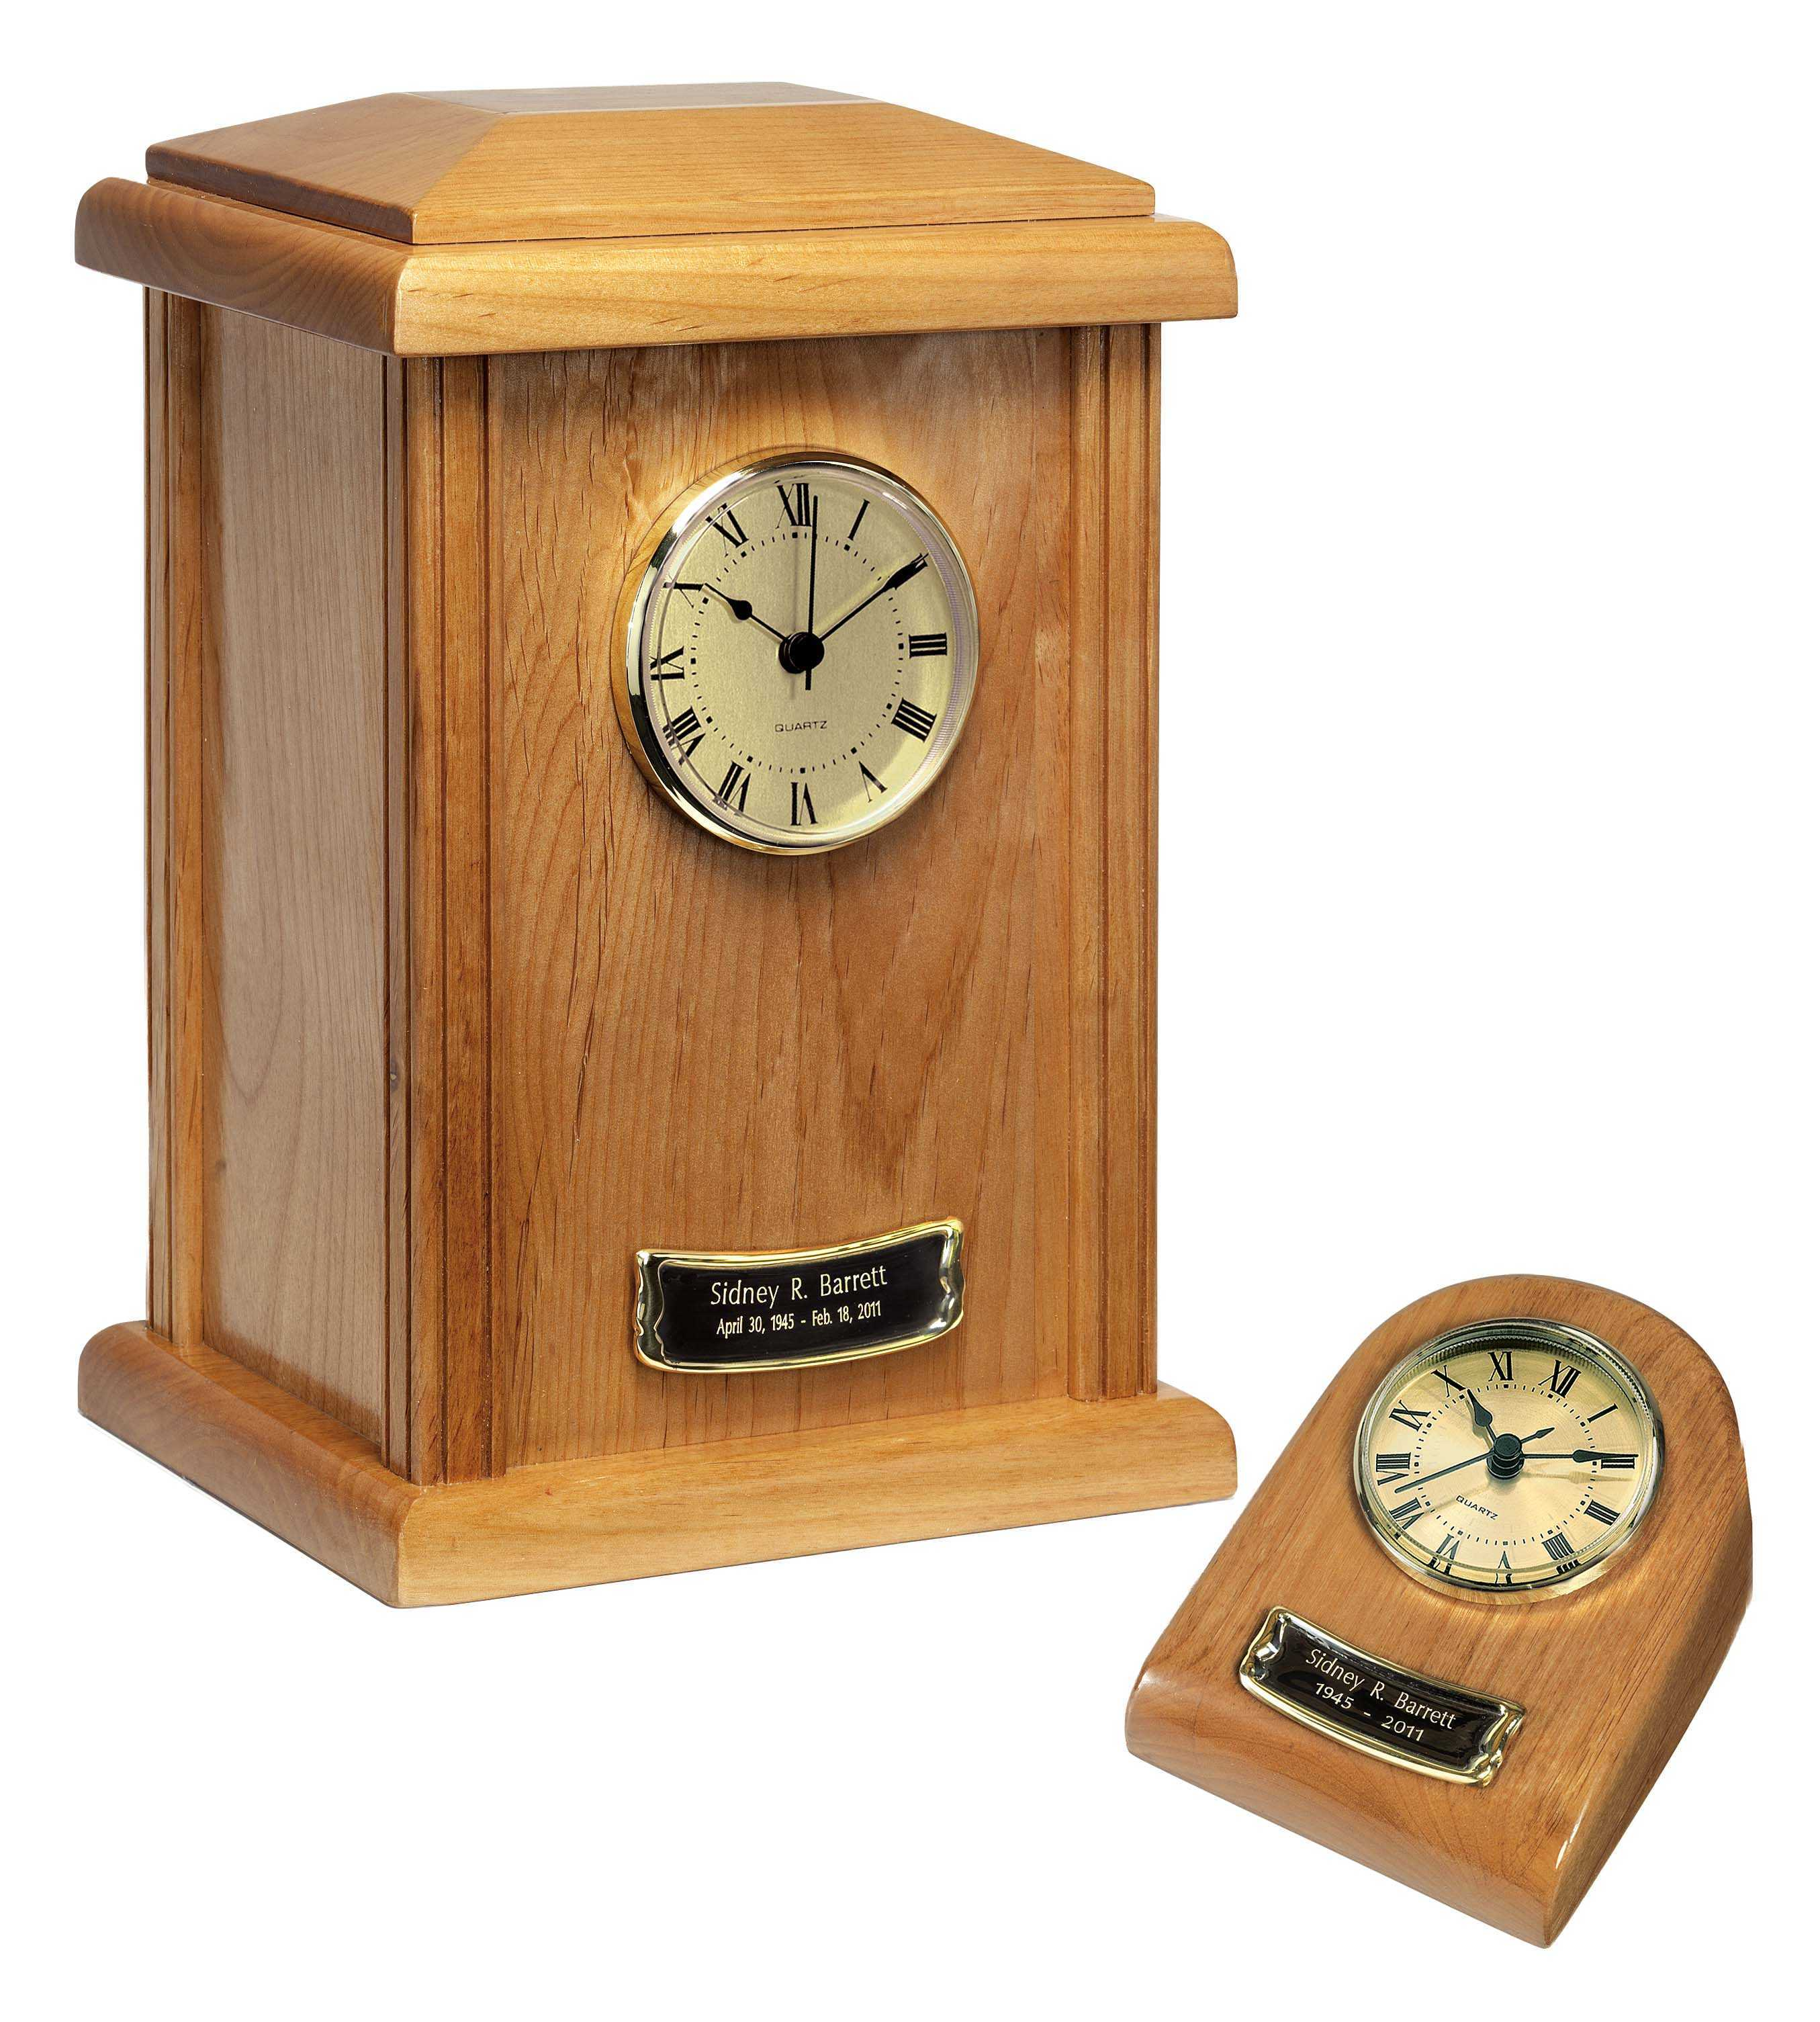 Wood Clock Tower Urn Naturale Finish $65-$150